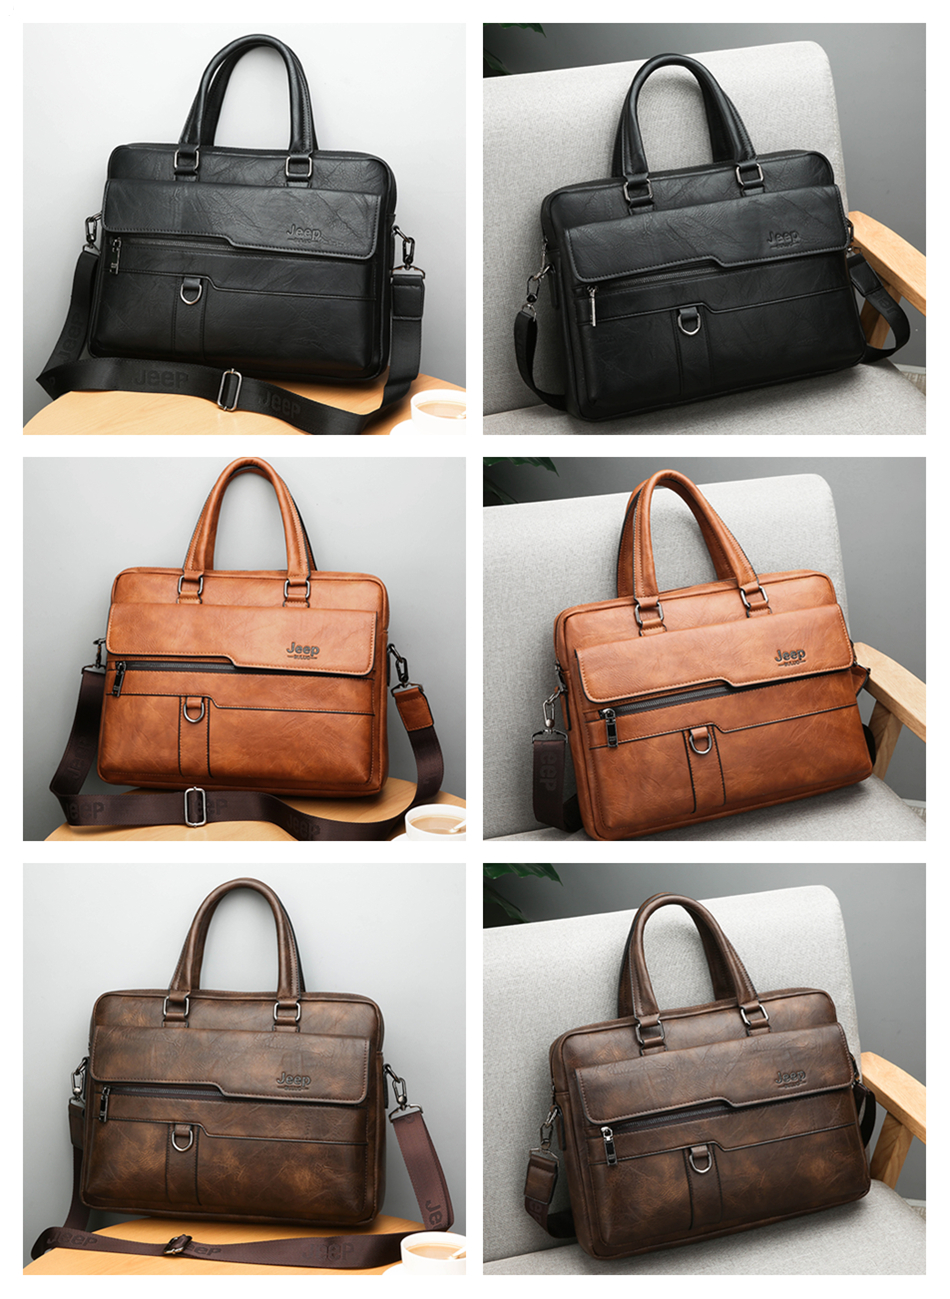 HTB1GGtSXMaH3KVjSZFjq6AFWpXaQ JEEP BULUO Brand Man Business Briefcase Bag Split Leather High Quality Men office Bags For 14 inch Laptop A4 File Causel Male